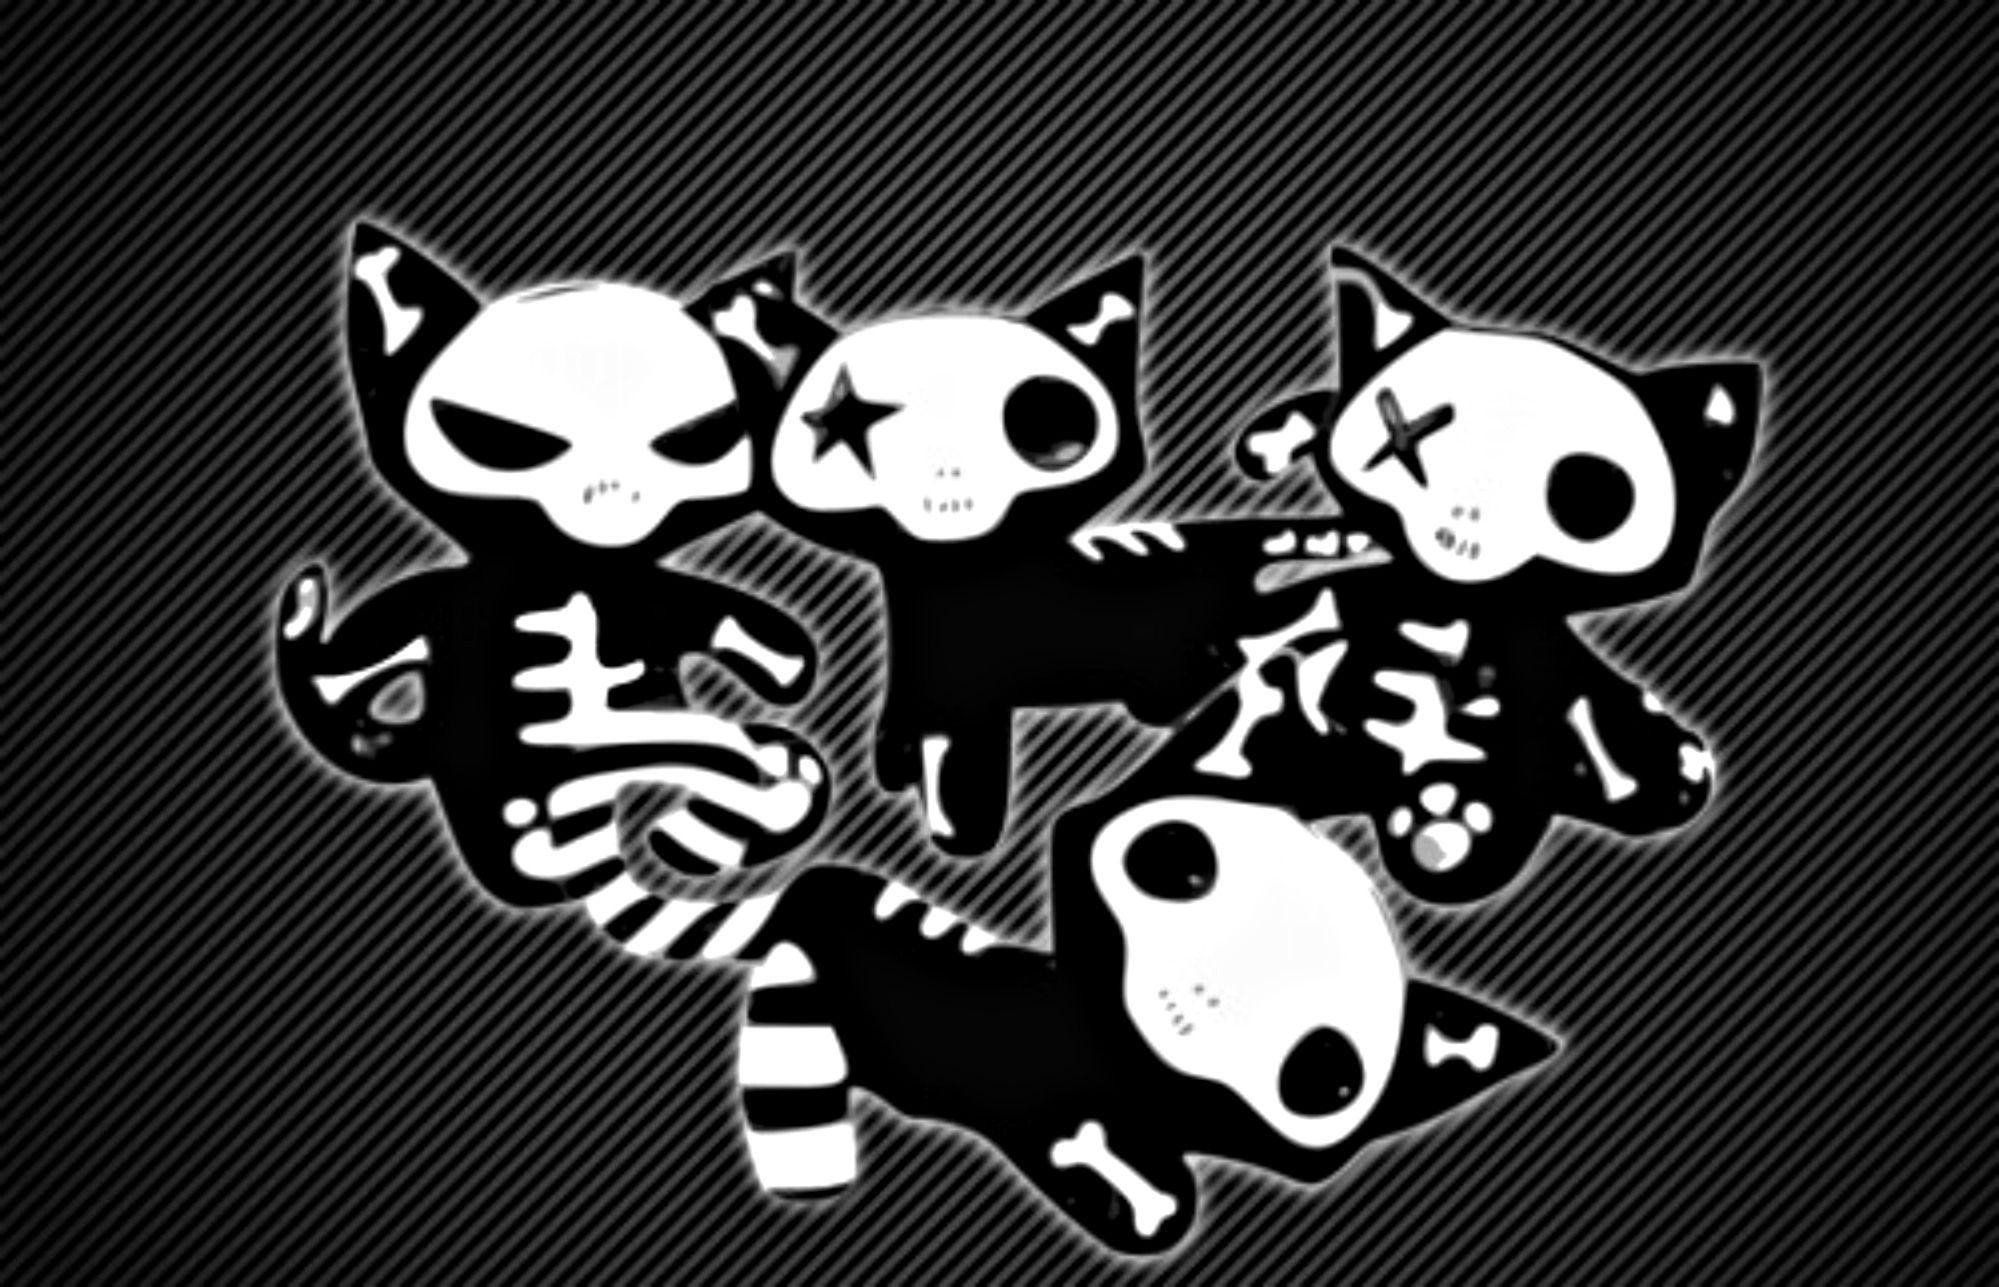 Cute skull wallpaper 48 images 1999x1287 wallpapers for girly skull wallpapers for desktop voltagebd Choice Image